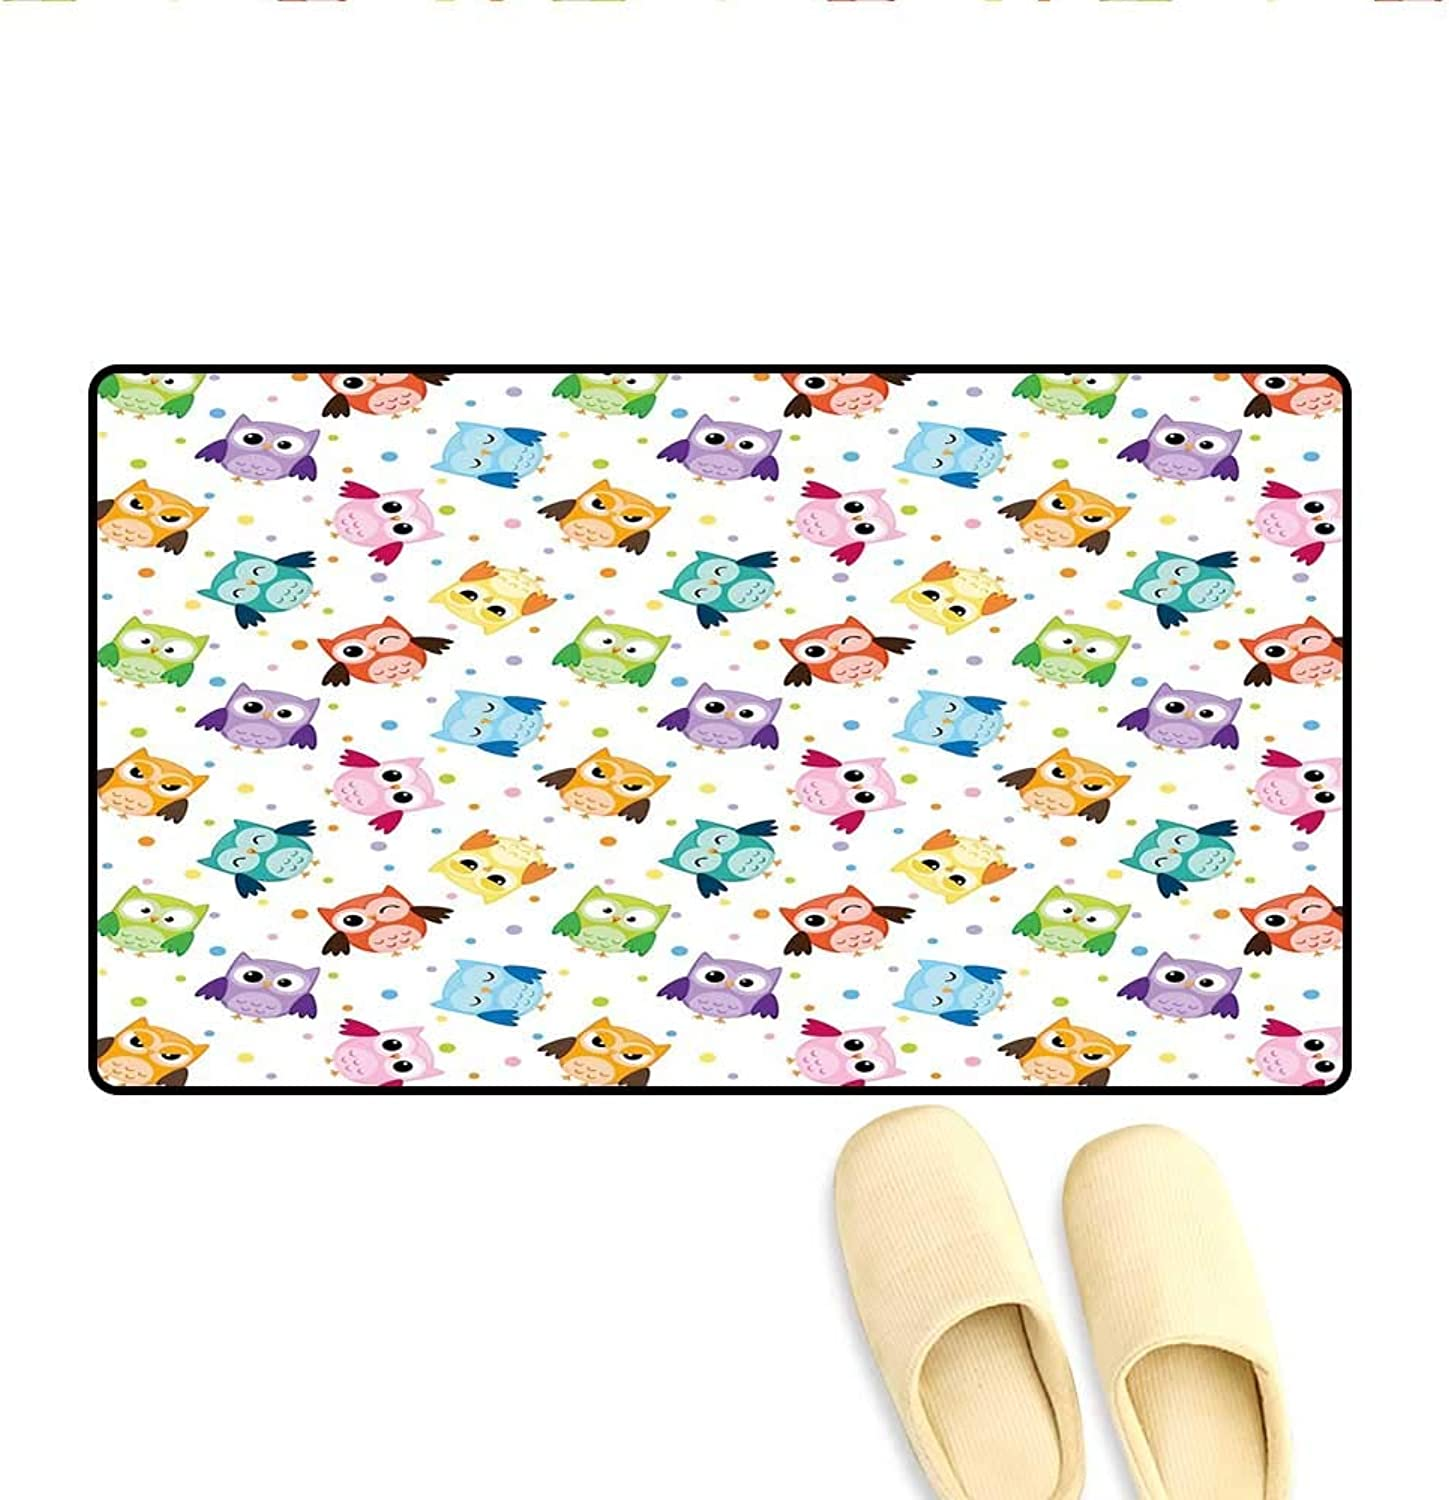 Door-mat Dotted Background colorful Owls Various Facial Expressions Angry Happy Confused Door Mats Inside Bathroom Mat Non Slip Multicolor 24 x36